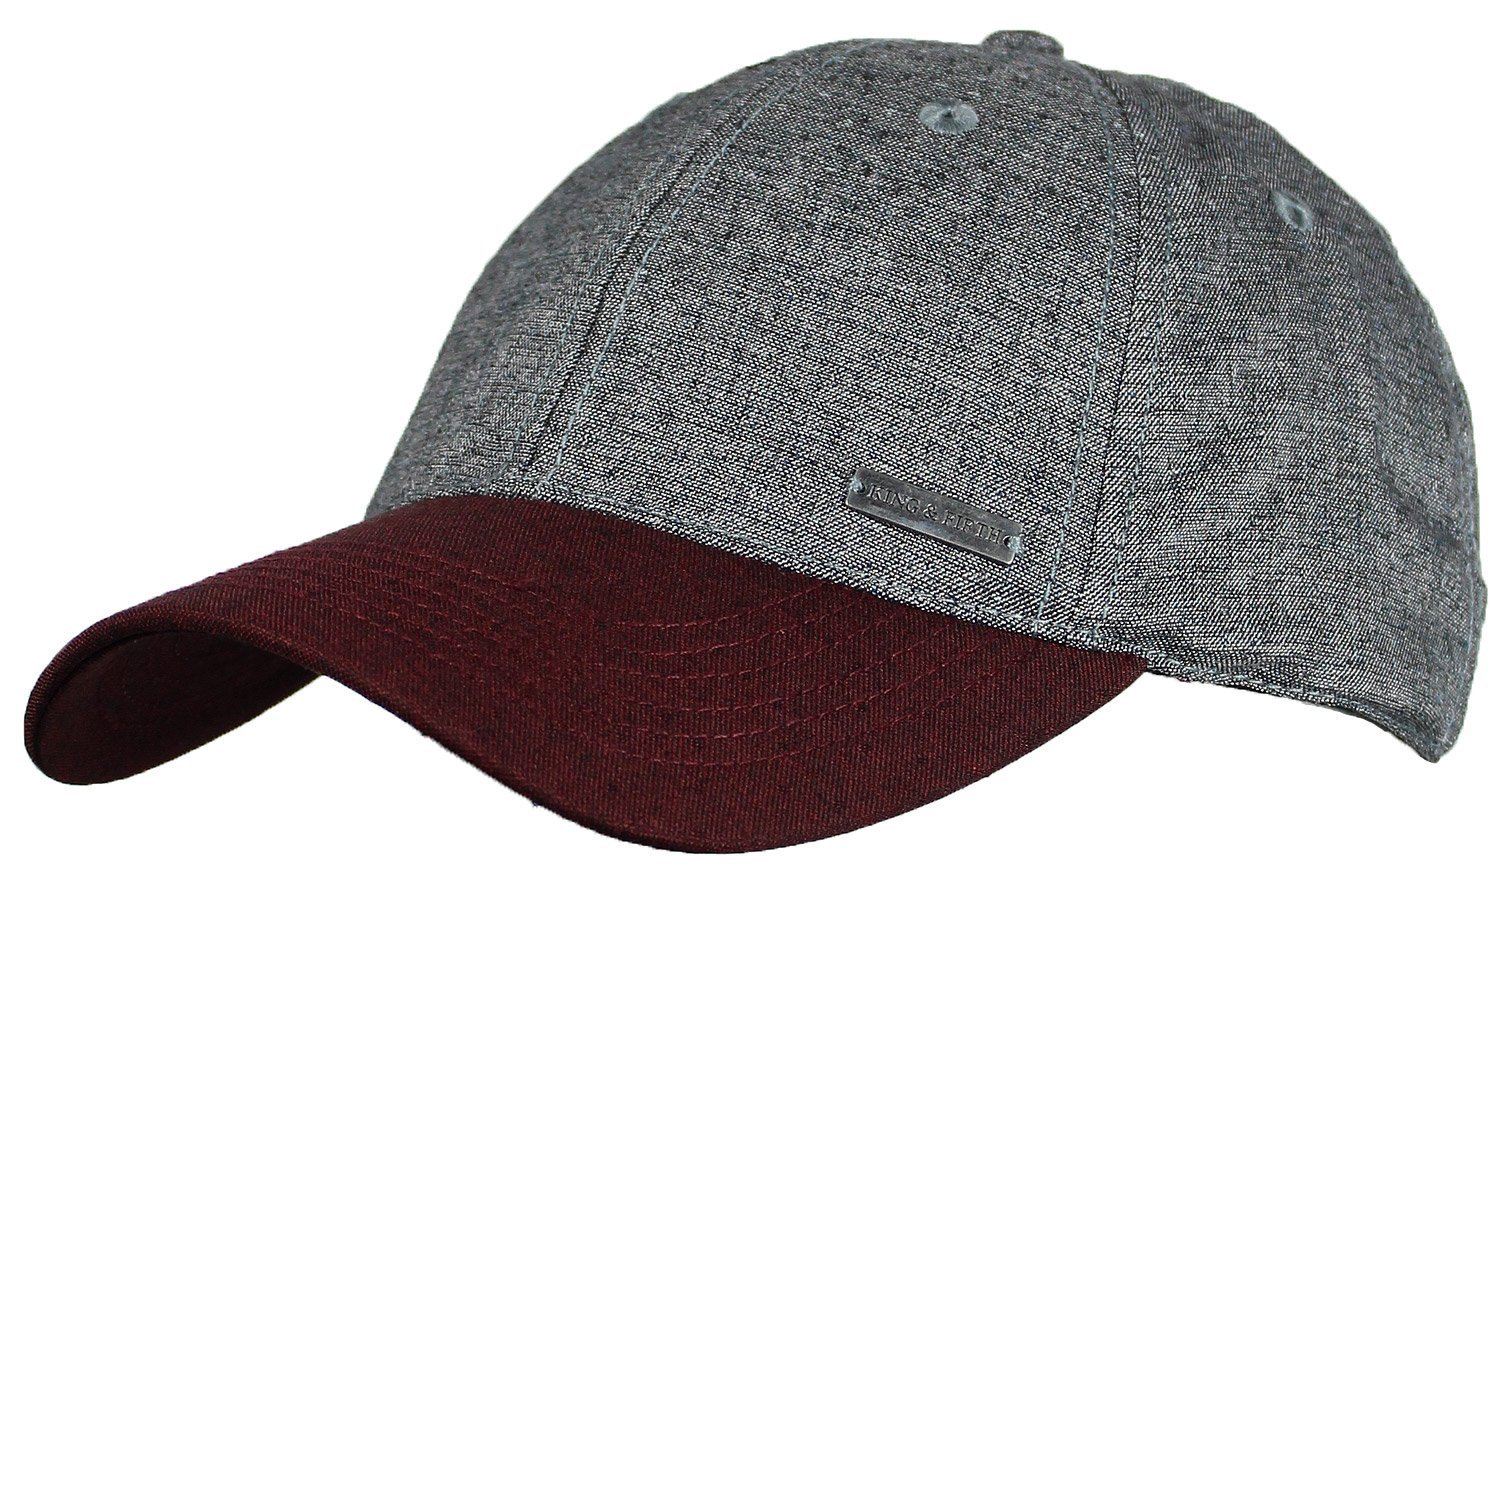 Baseball Hats for Men & Women by King & Fifth | Baseball Hat with Low Profile & Stylish Fabric + Dad Hat + Burgundy Grey Baseball Cap